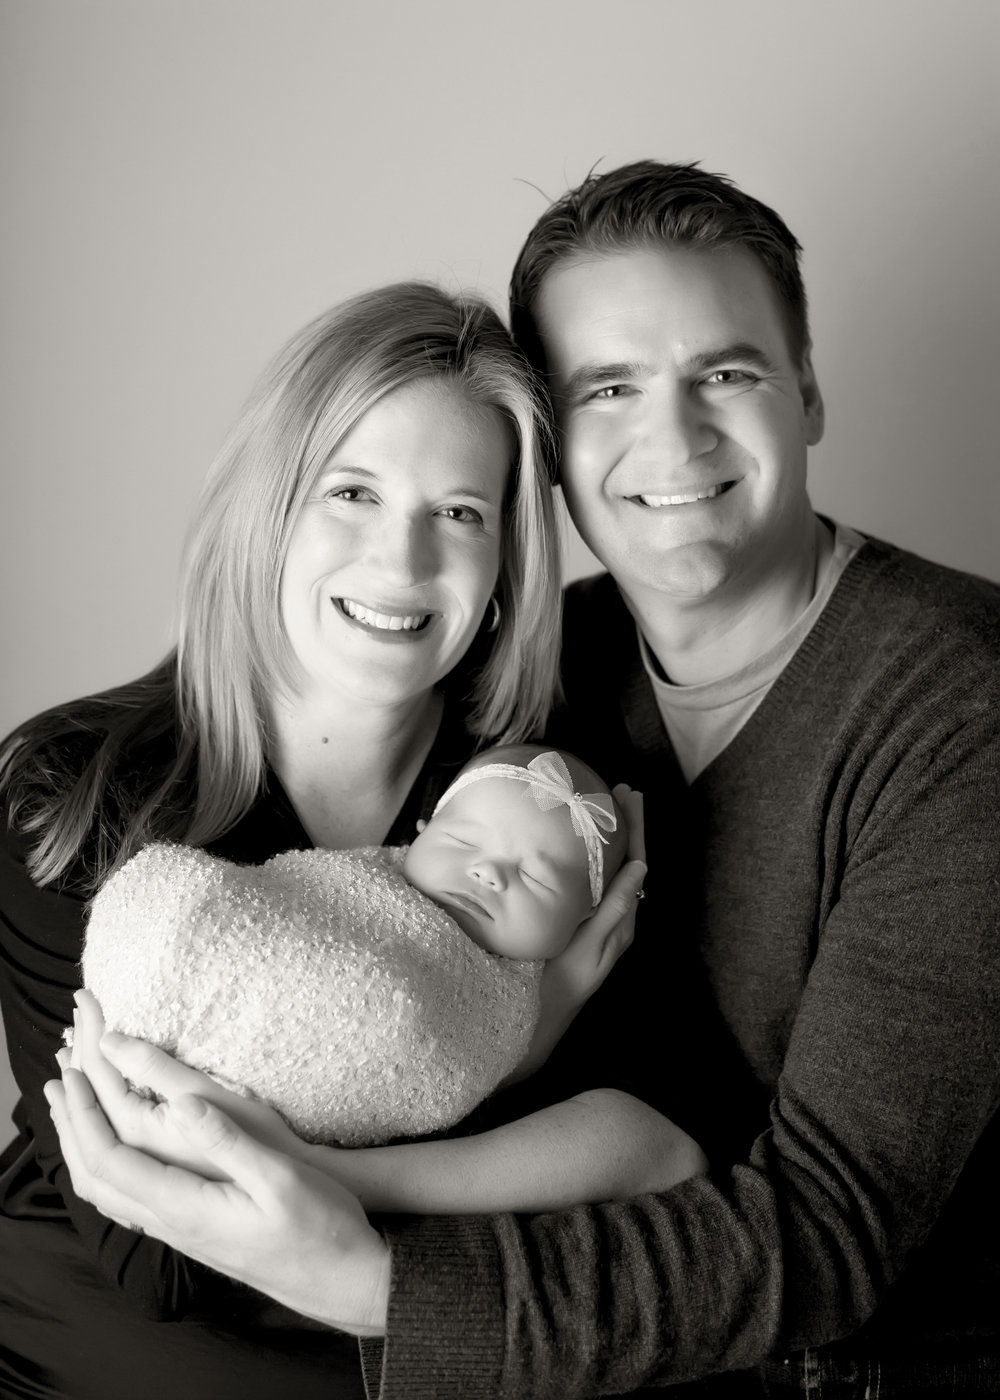 Jon and Suzette with their new baby girl.